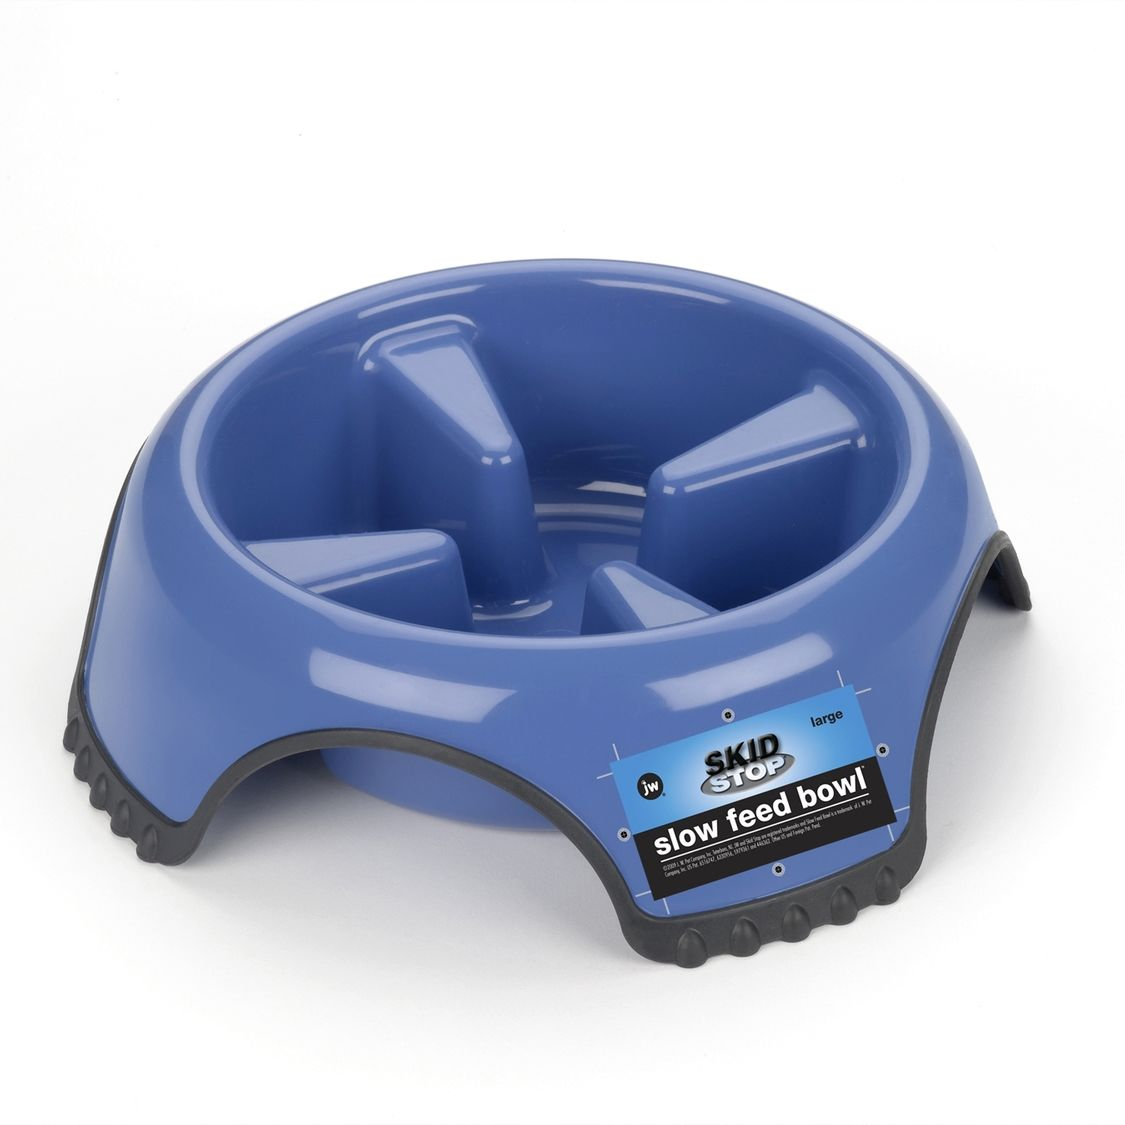 Petmate PTM63241 JW Skid Stop Slow Feed Dog Bowl